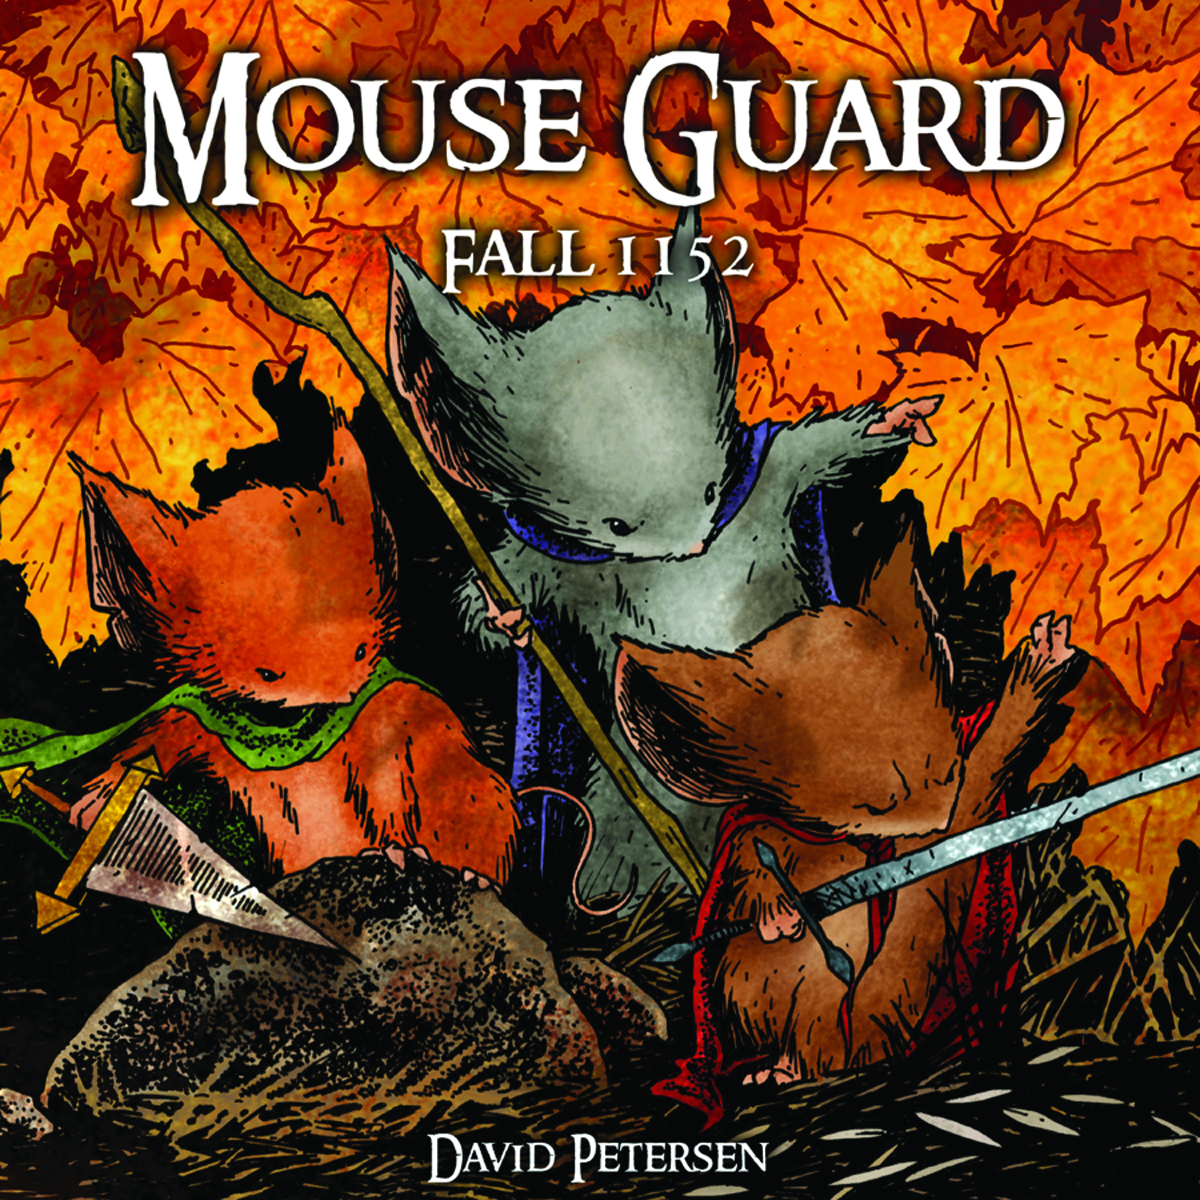 (USE DEC138297) MOUSE GUARD HC VOL 01 FALL 1152 W/ DUST JACK